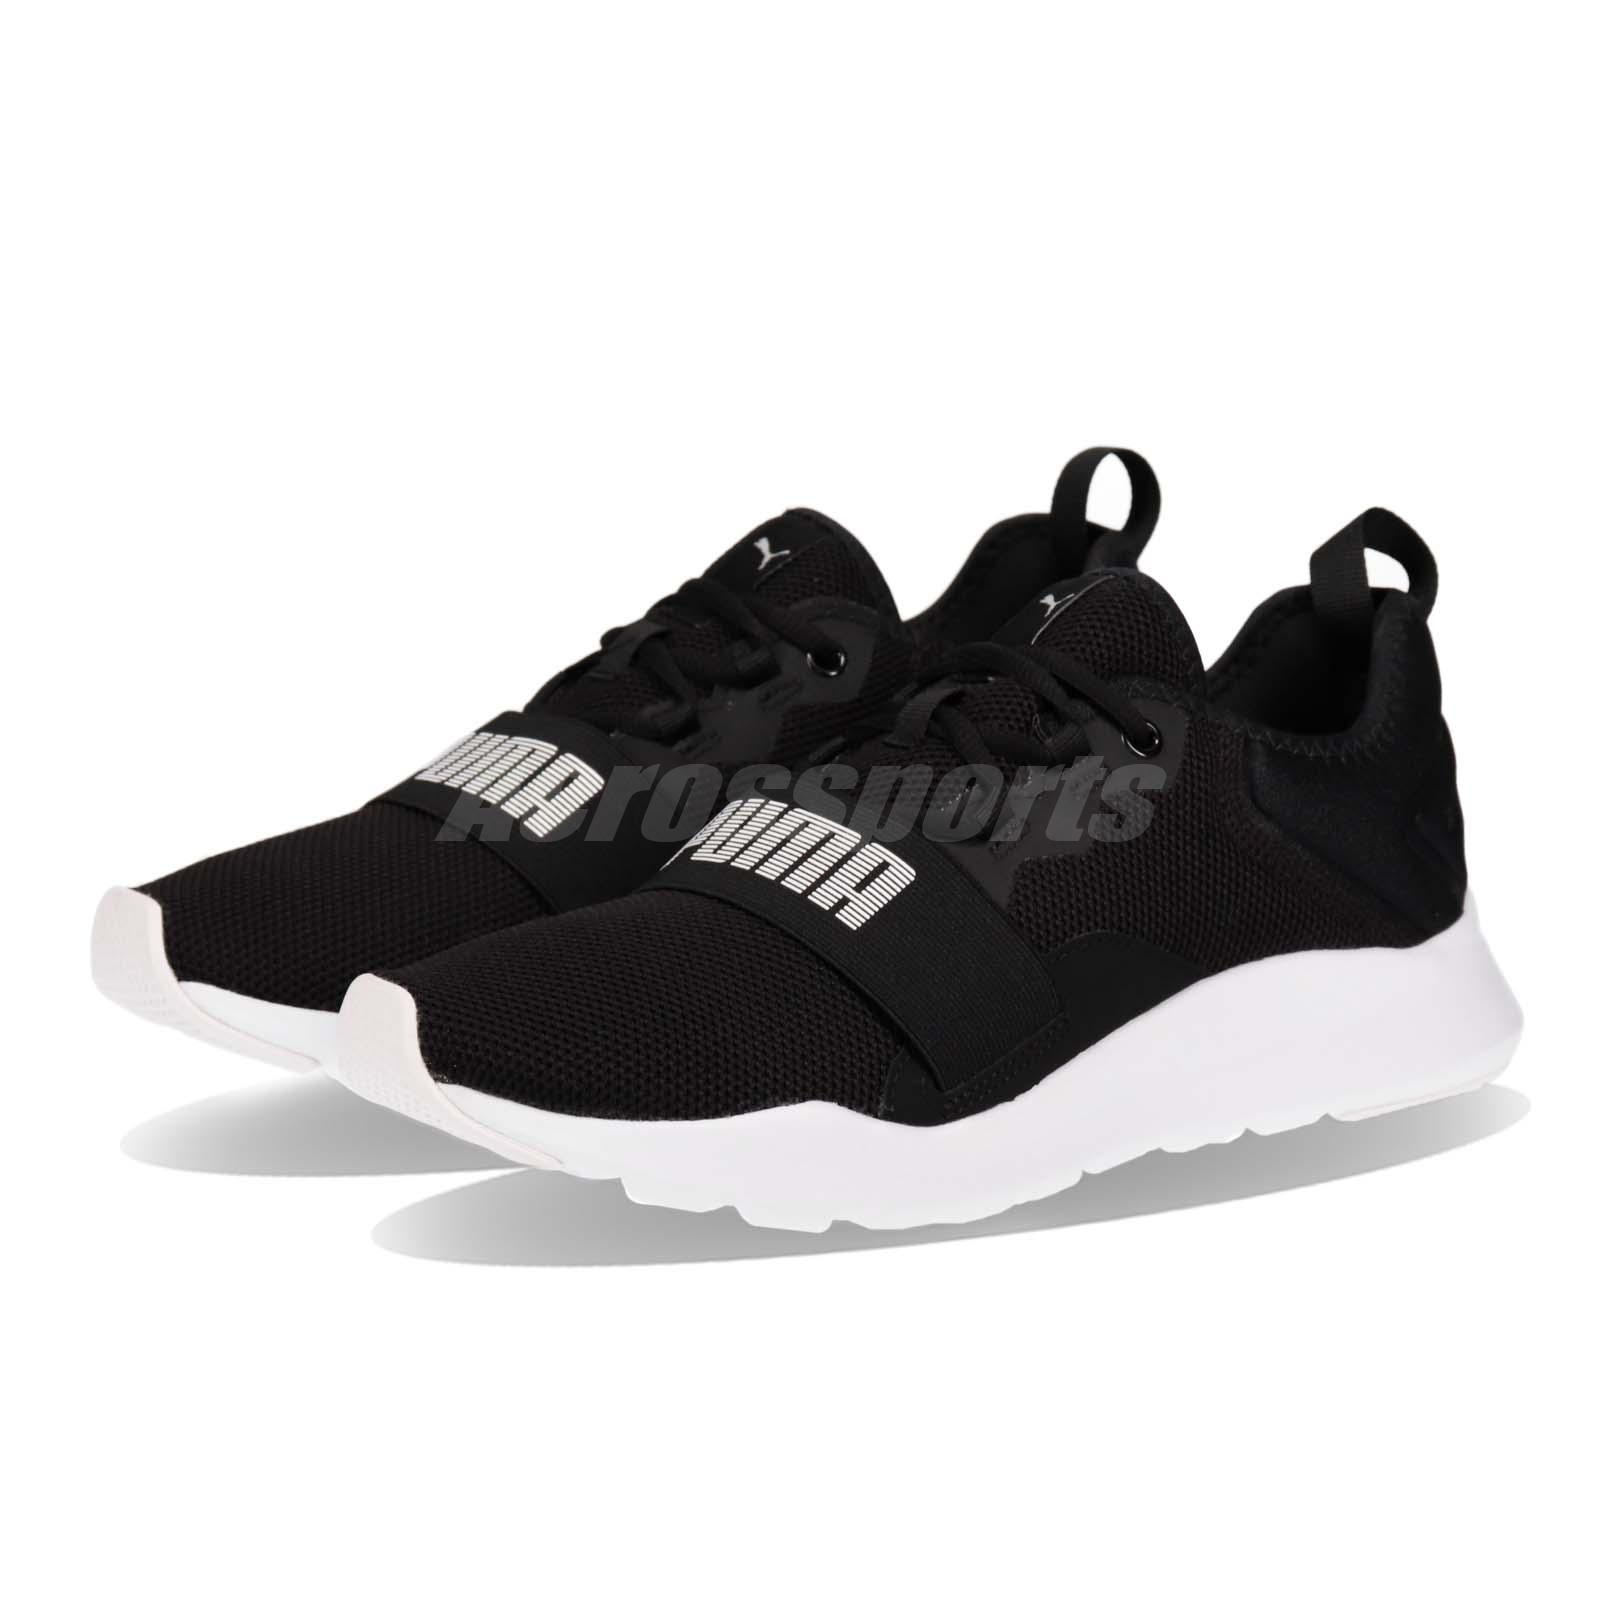 1b42a1ac1eb Details about Puma Wired Pro Black White Men Women Running Casual Shoes  Sneakers 369126-01